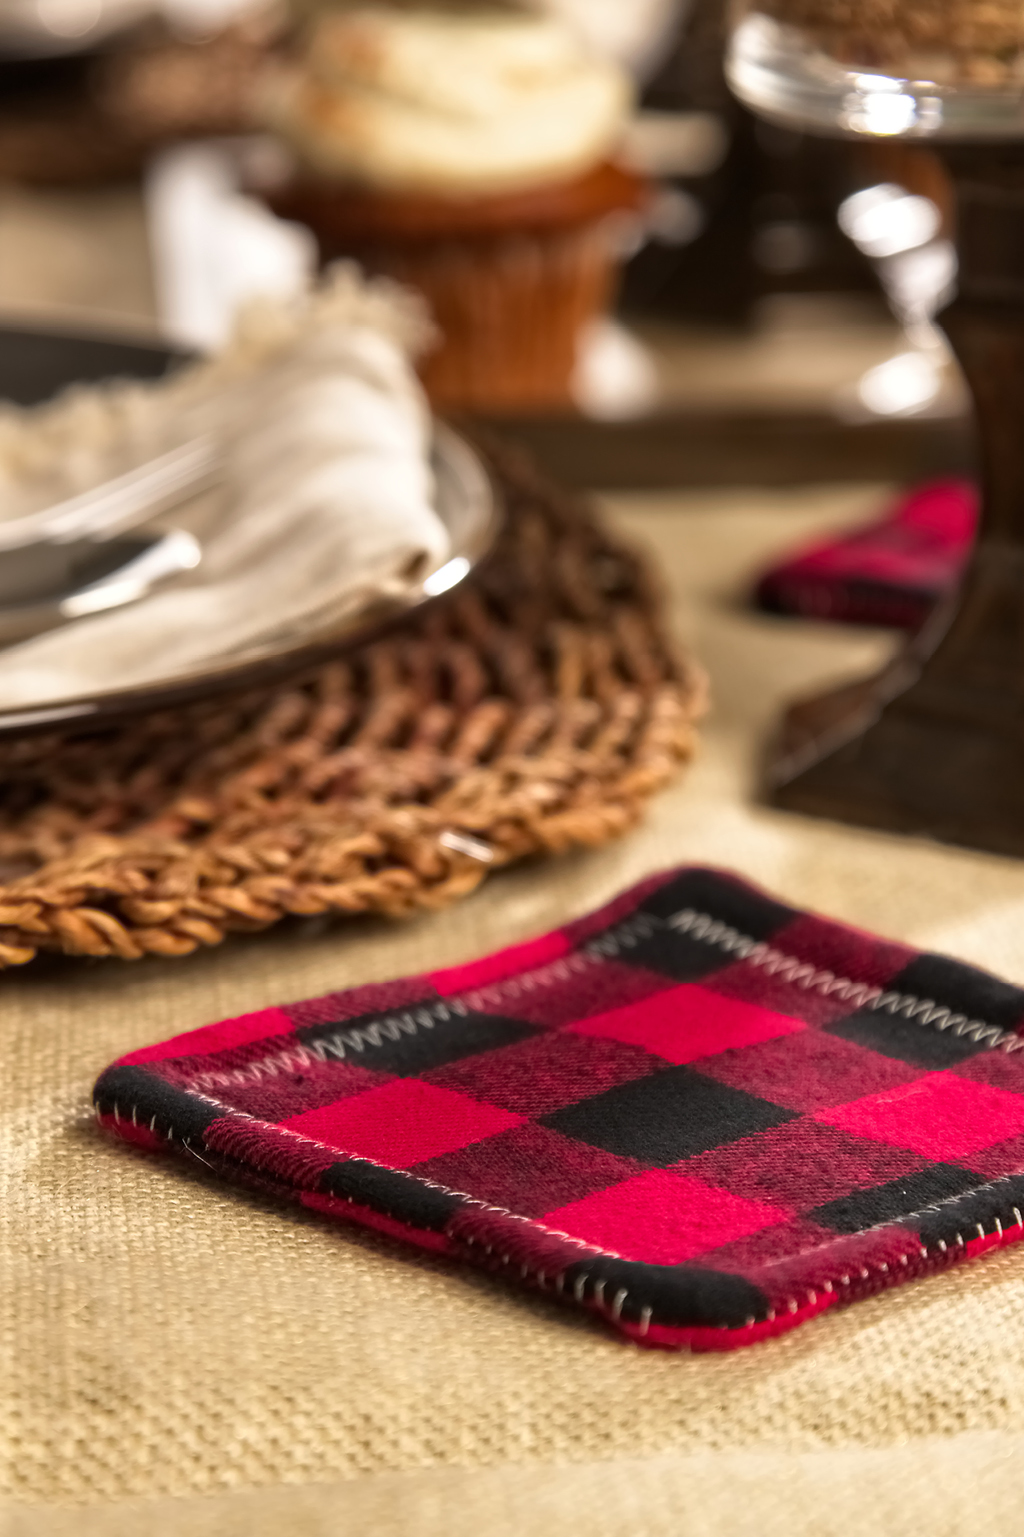 Red and black flannel coaster on table